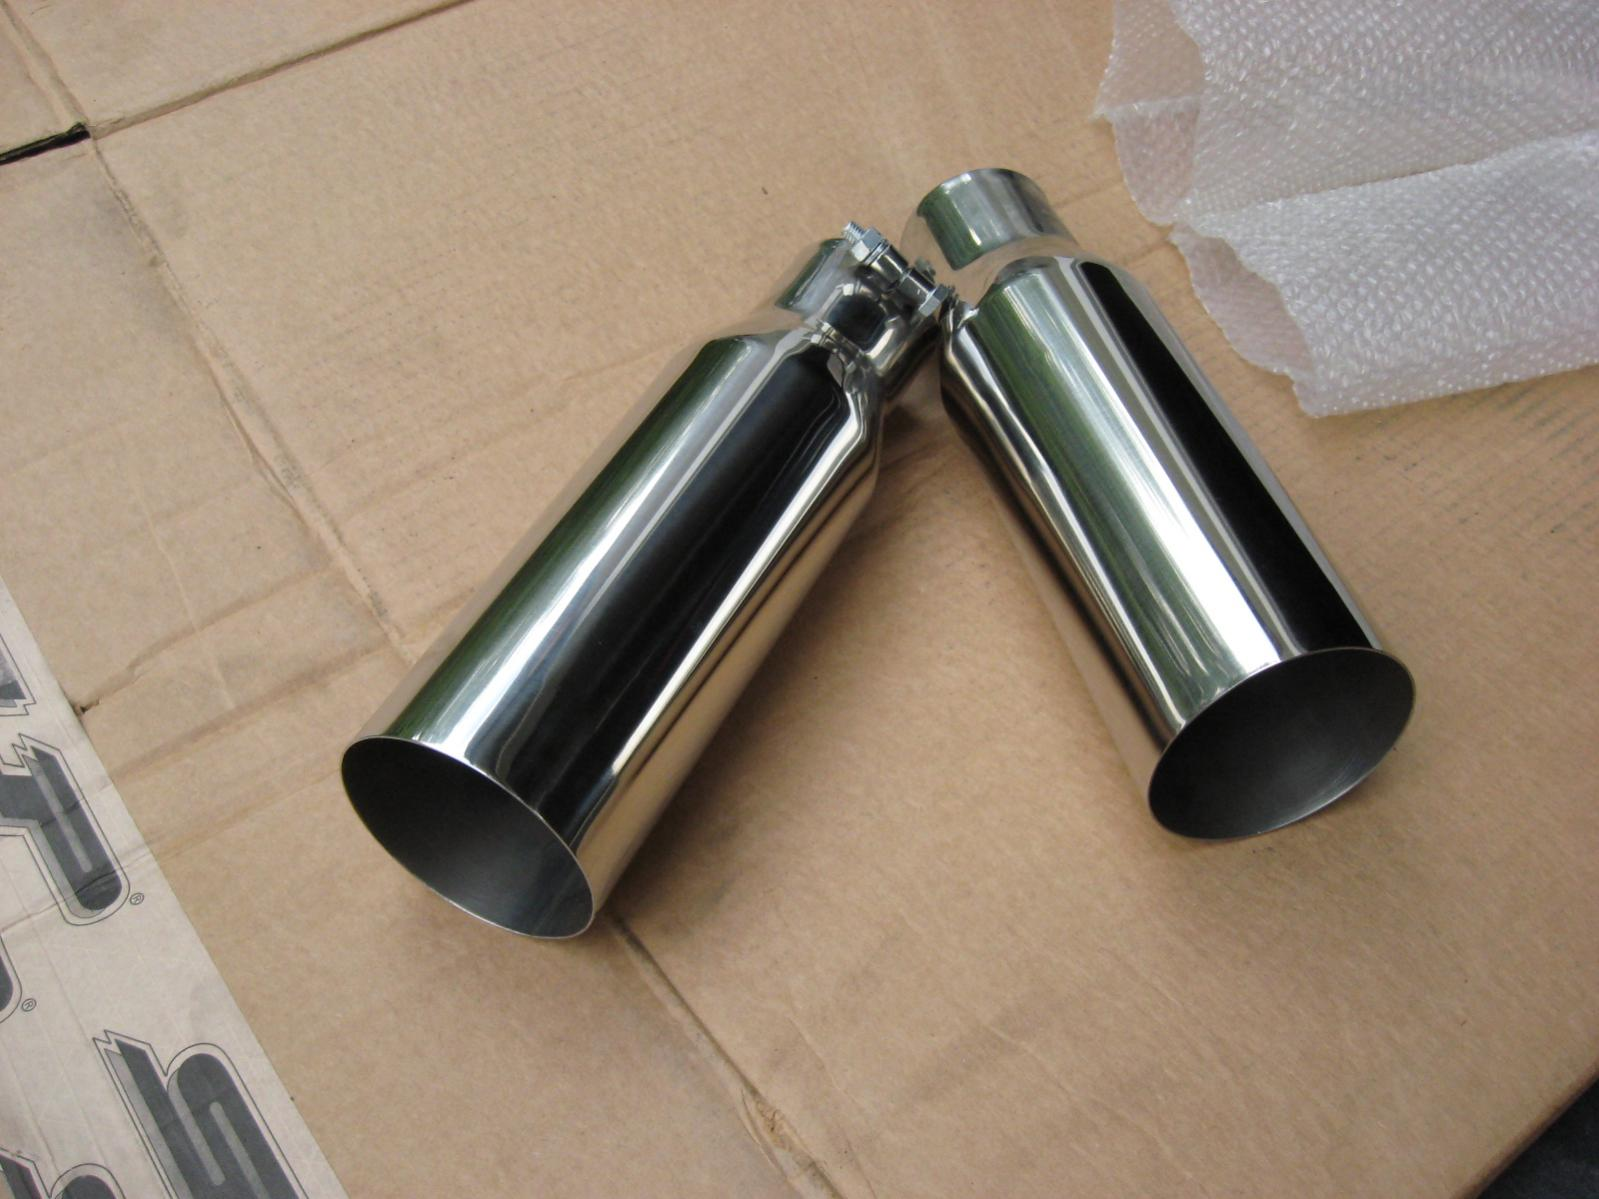 hooker 3 5 inch chrome exhaust tips and